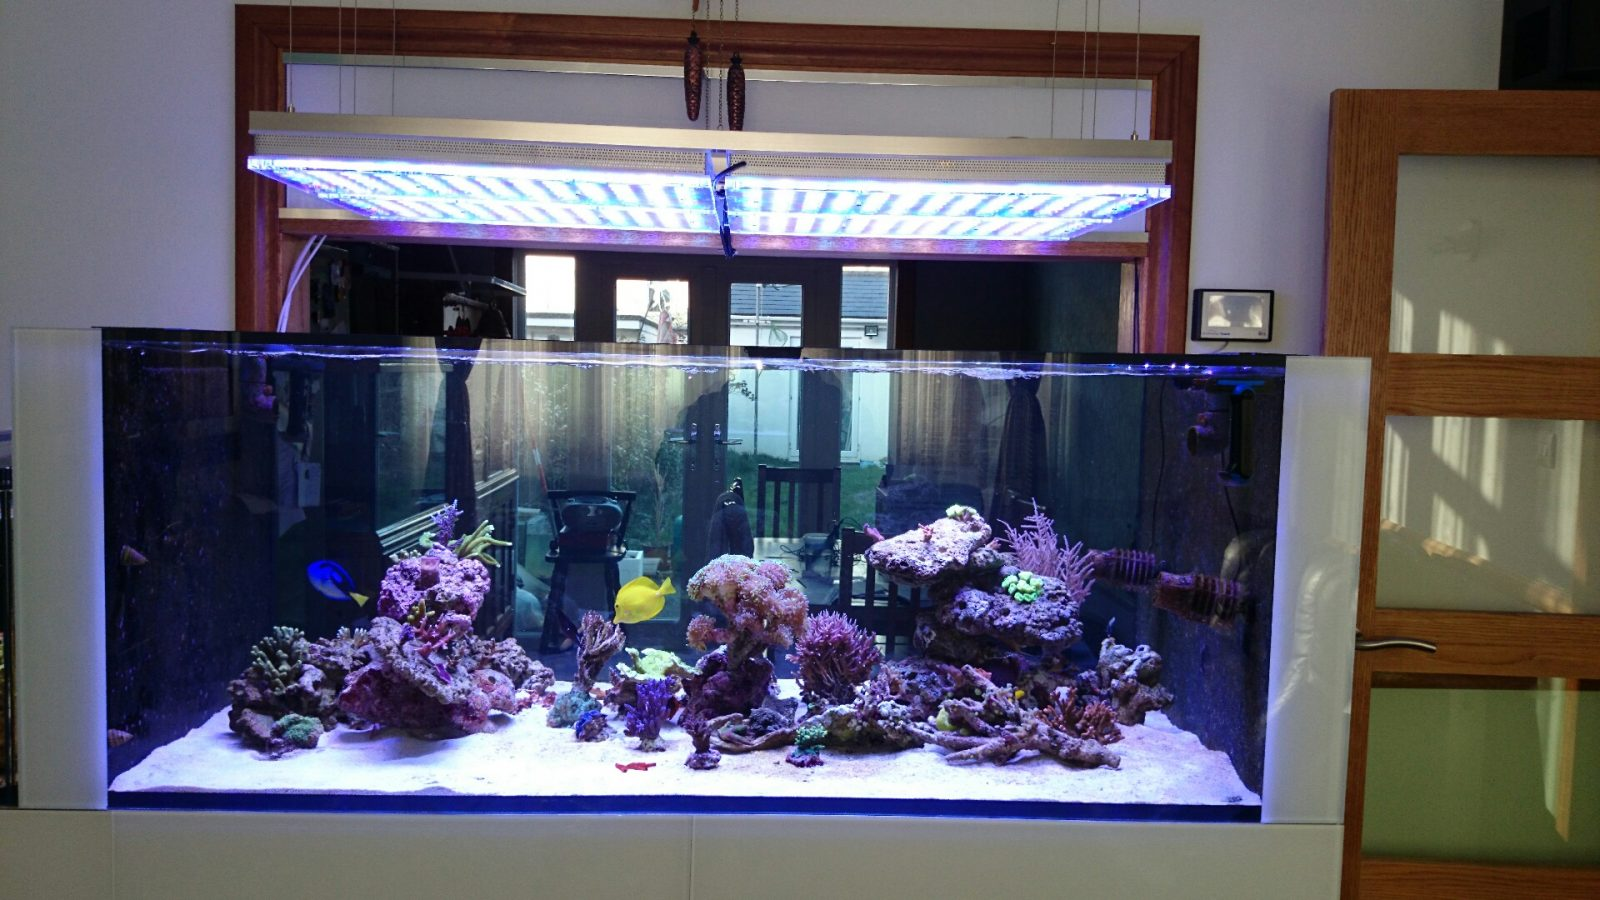 best coral growth LED lighting 2020